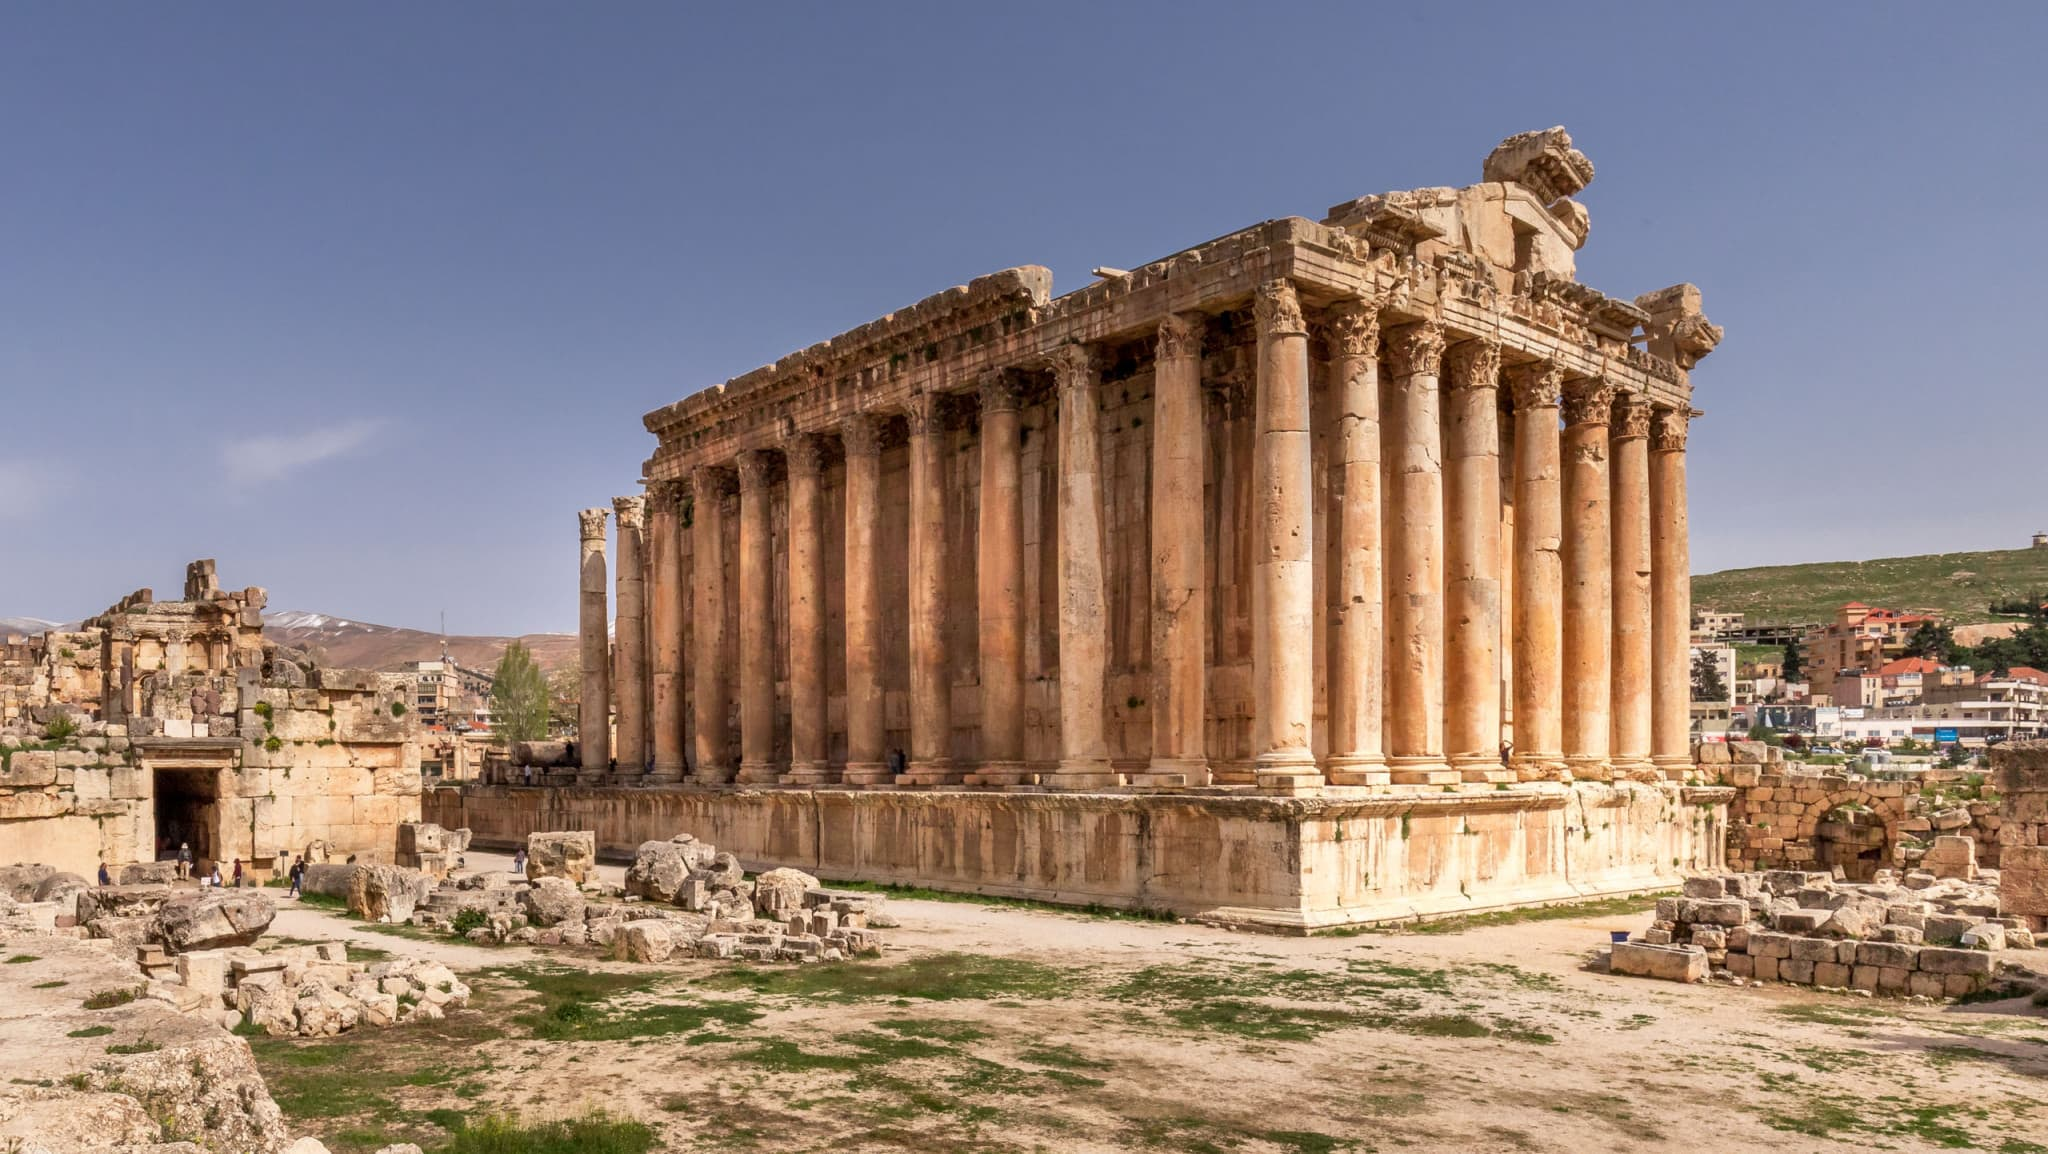 LEBANON – The most complete Lebanon itinerary: All highlights in 10 days (or 2 weeks)